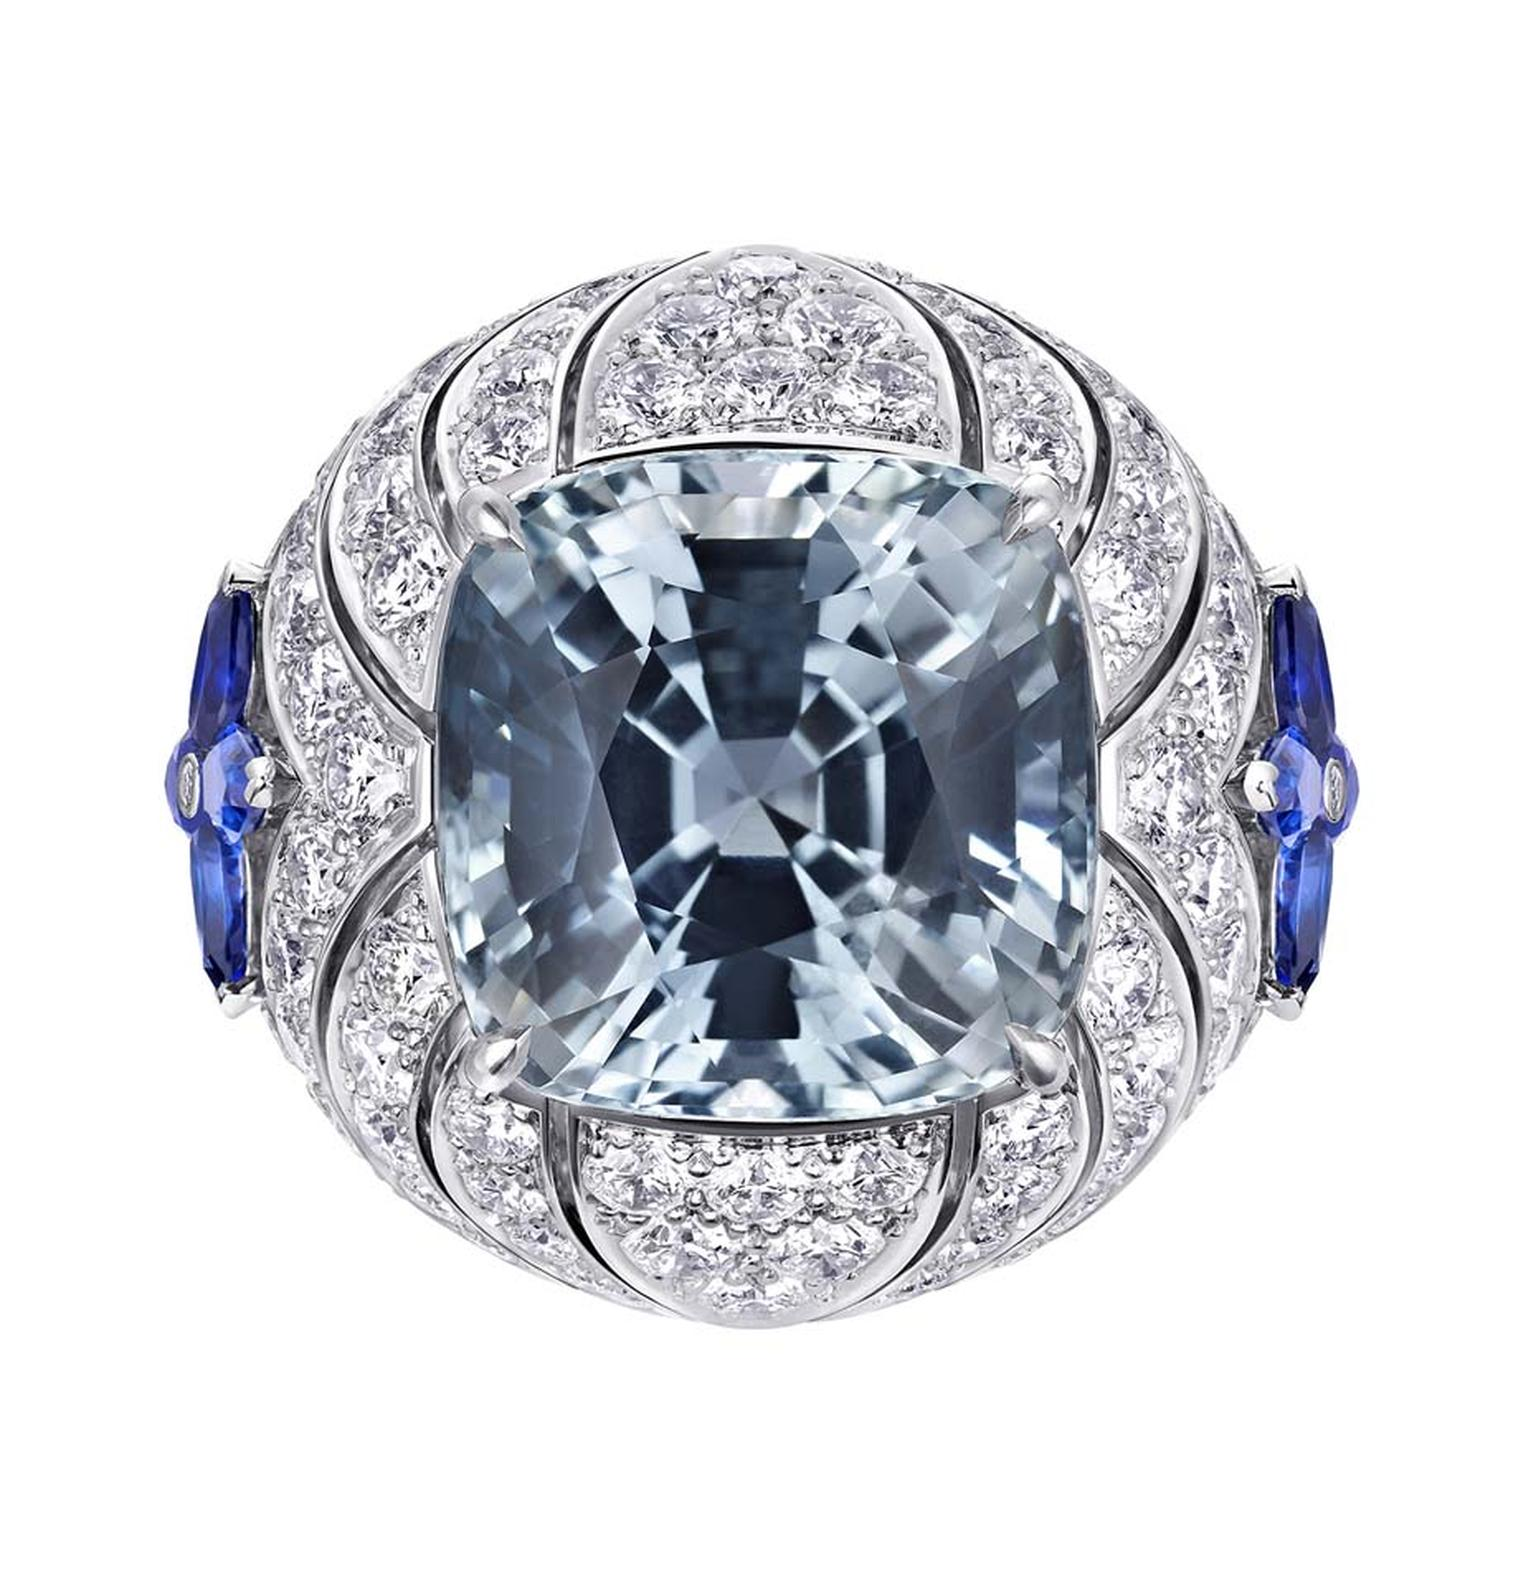 Louis Vuitton Acte V Genesis ring featuring a central Pien Pyit sapphire surrounded by sapphires and diamonds.